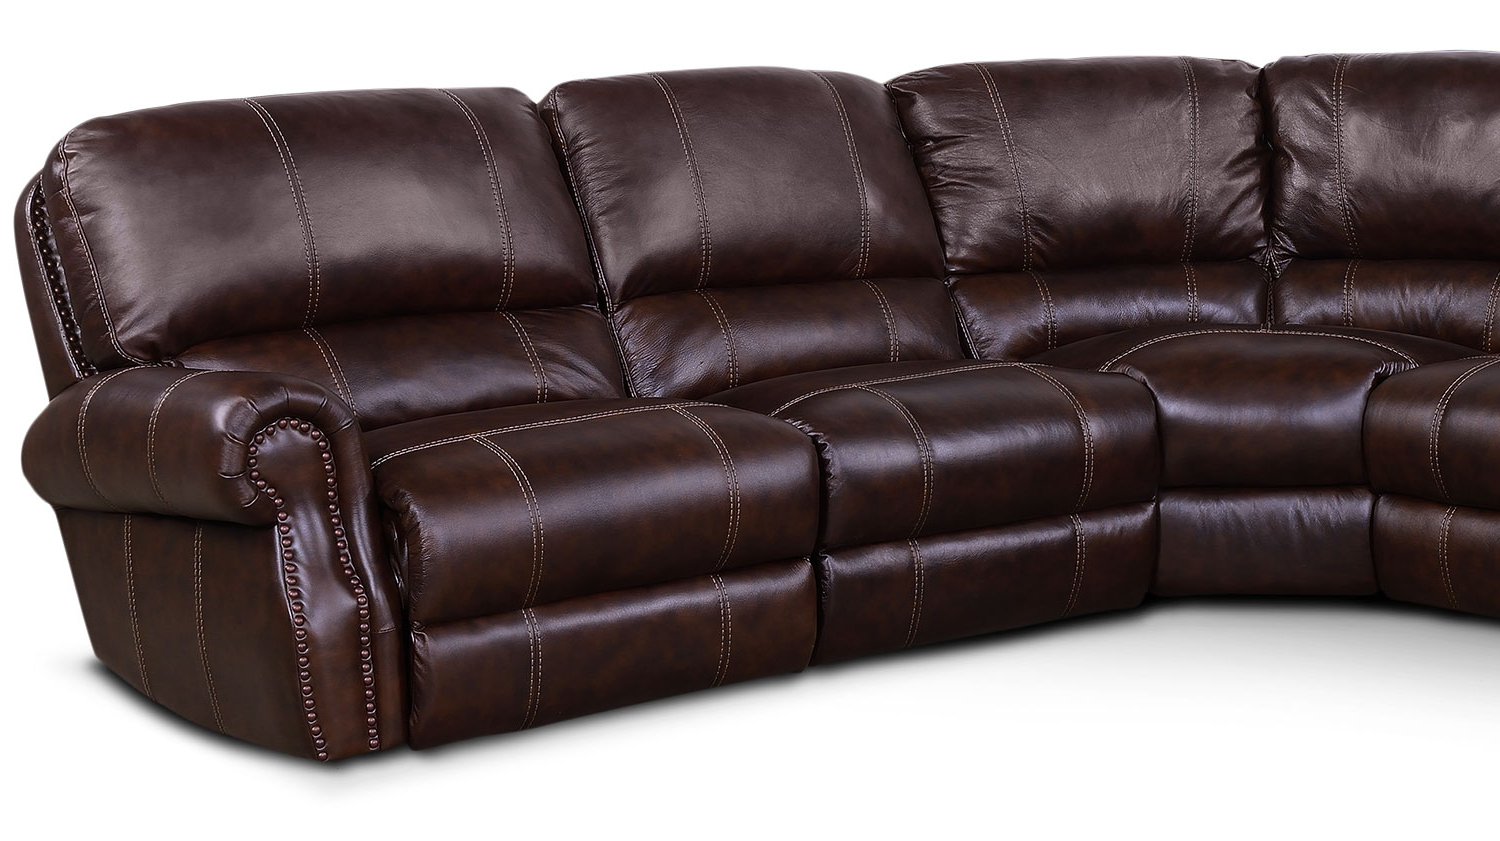 Latest Norfolk Chocolate 6 Piece Sectionals With Raf Chaise With Regard To Dartmouth 6 Piece Power Reclining Sectional With 2 Reclining Seats (Gallery 3 of 20)